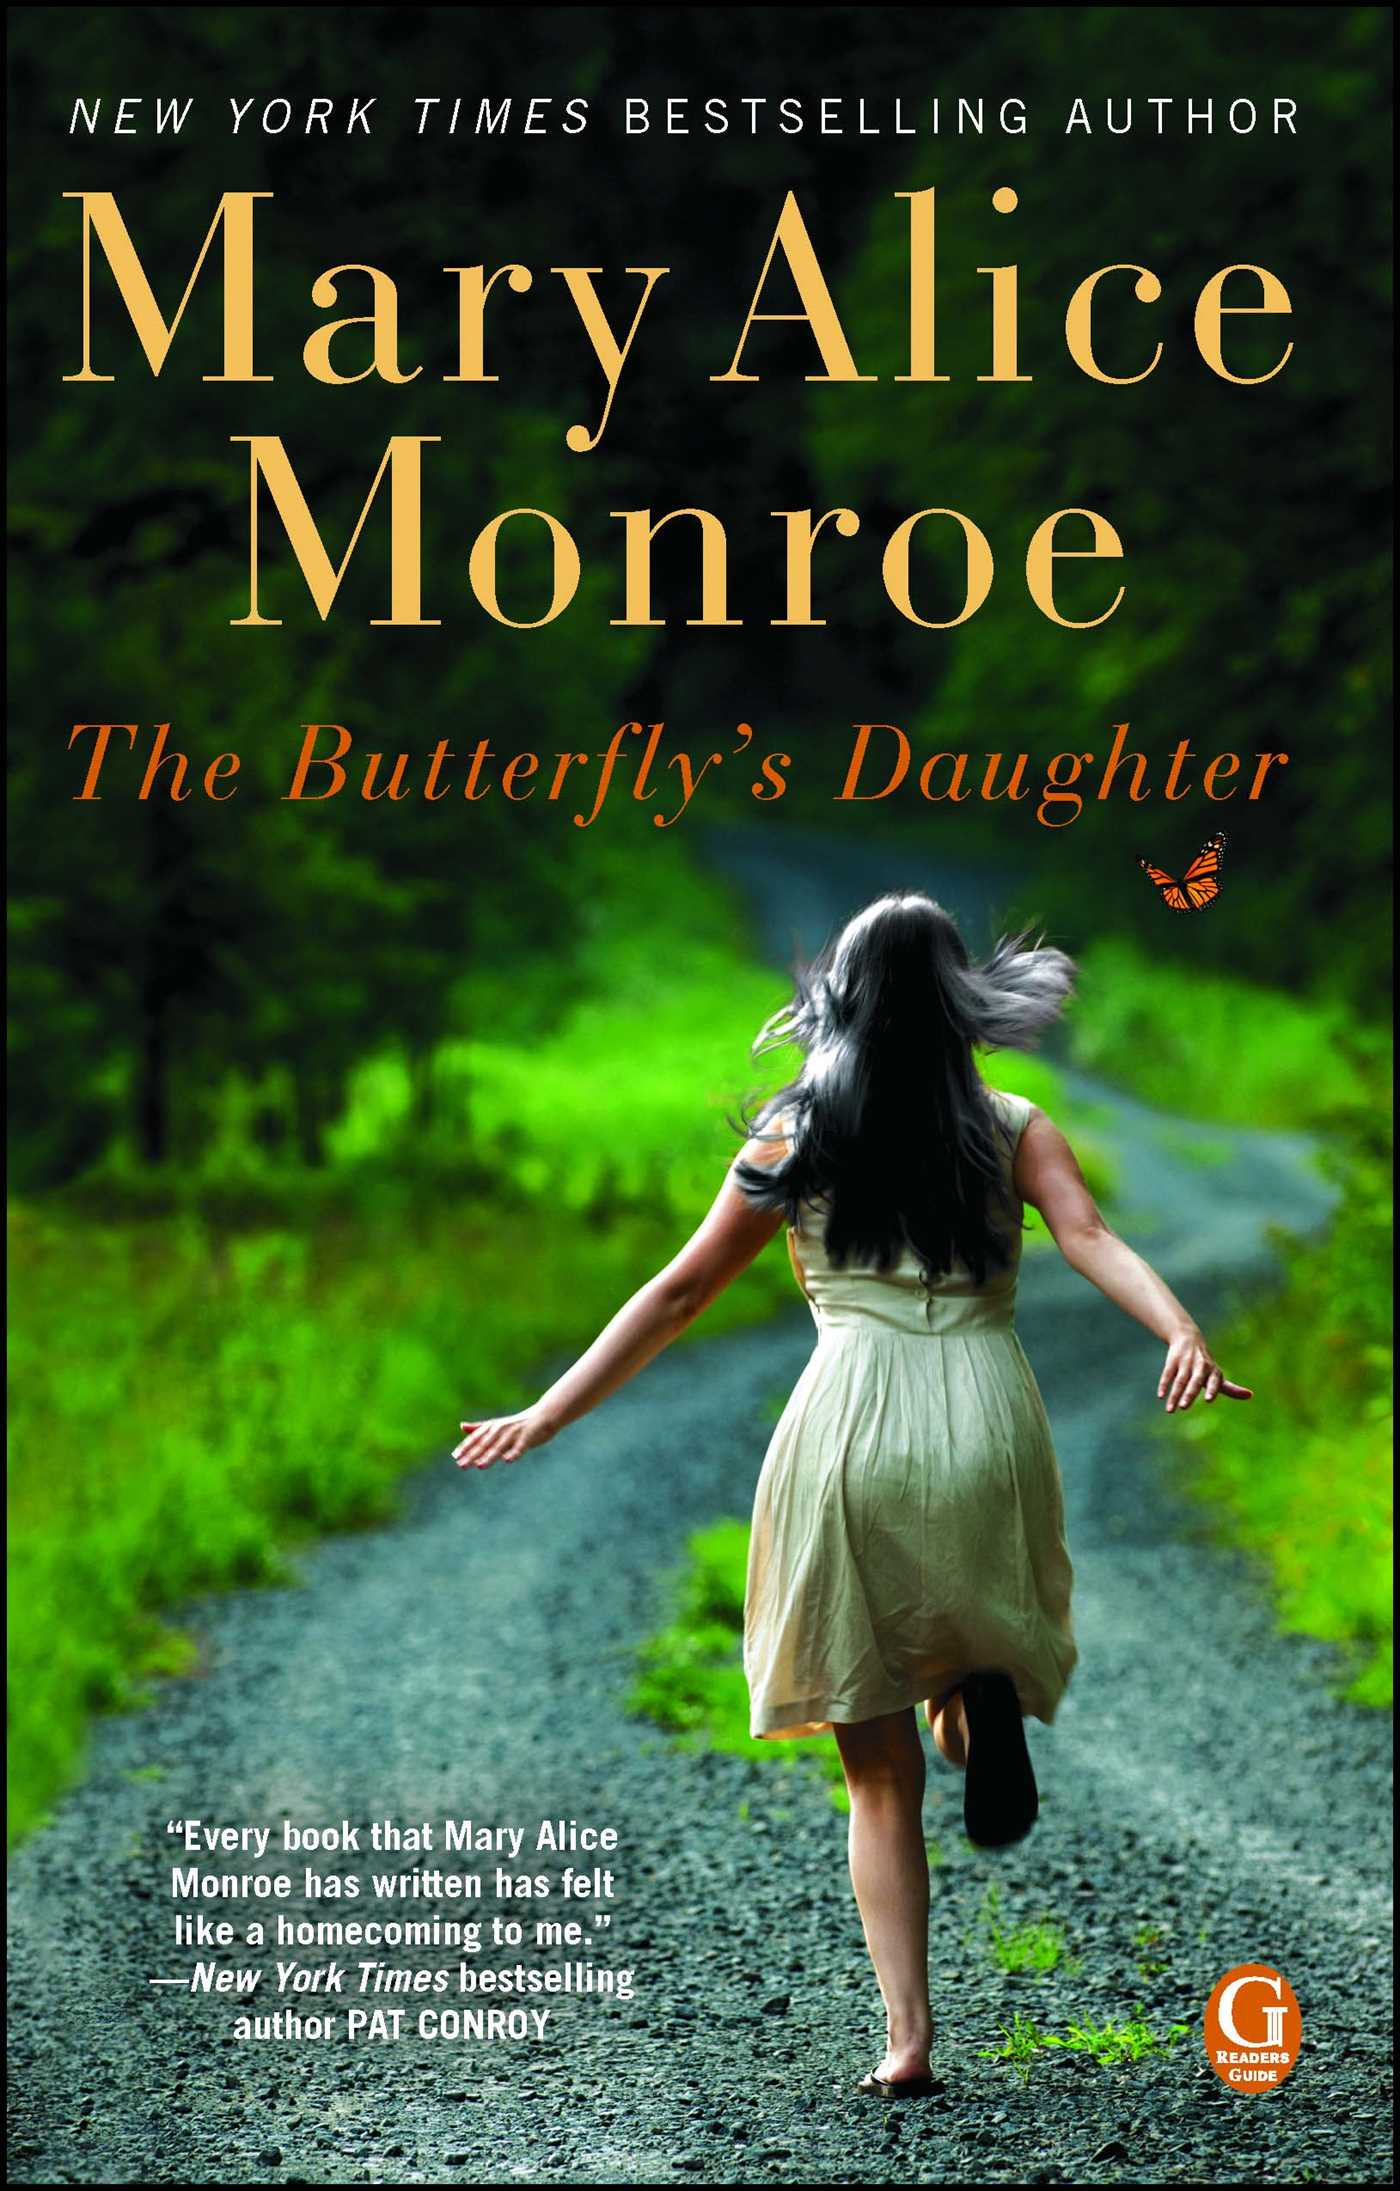 The butterflys daughter 9781439171028 hr